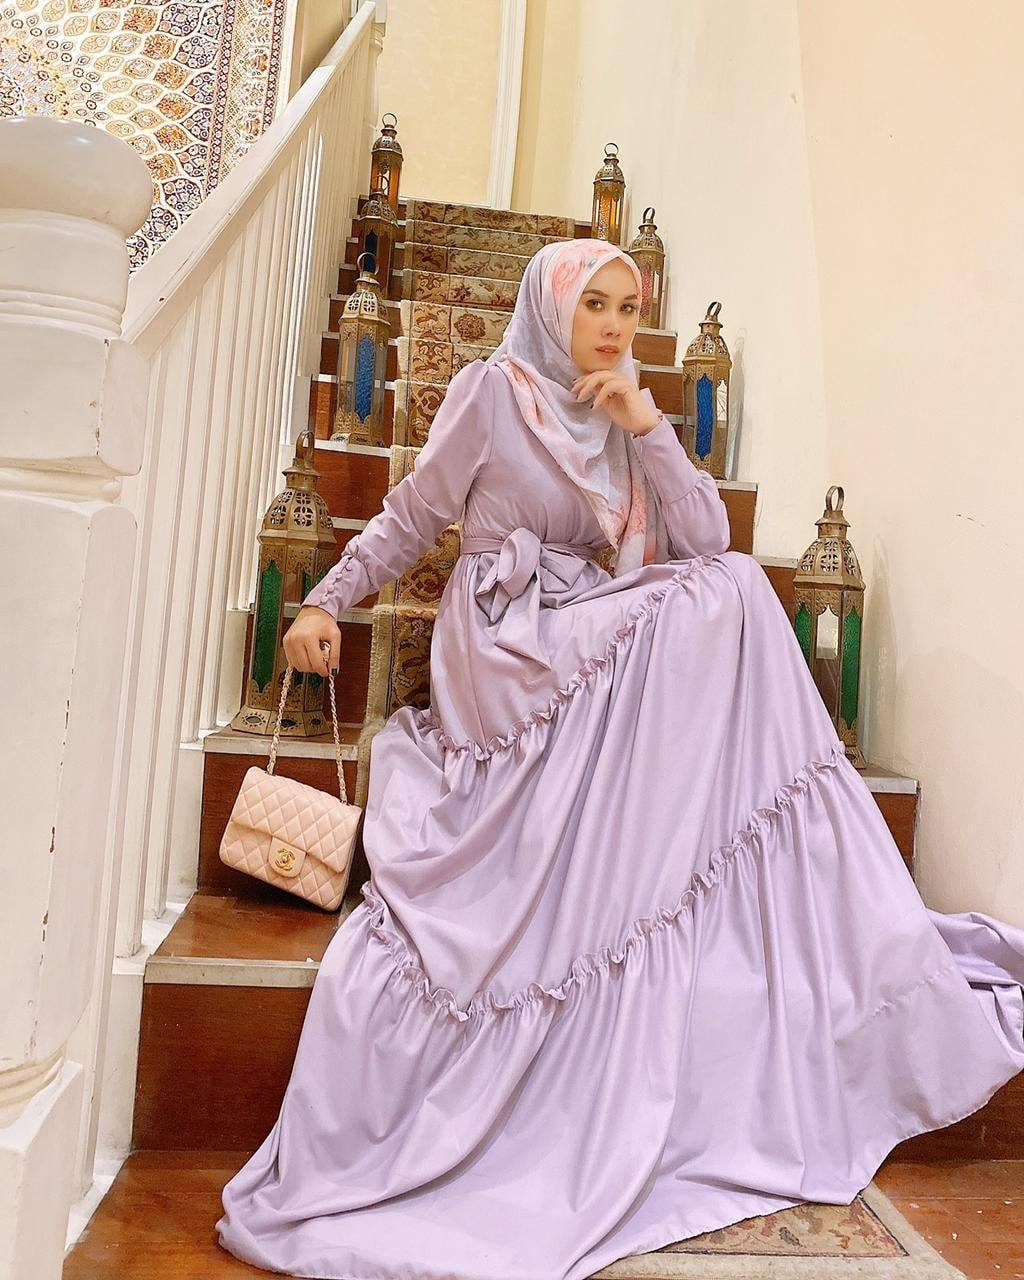 152762066_10157926638427227_3305570798586448453_o NANDHANA SWEETY LILAC BY YS SIGNATURE